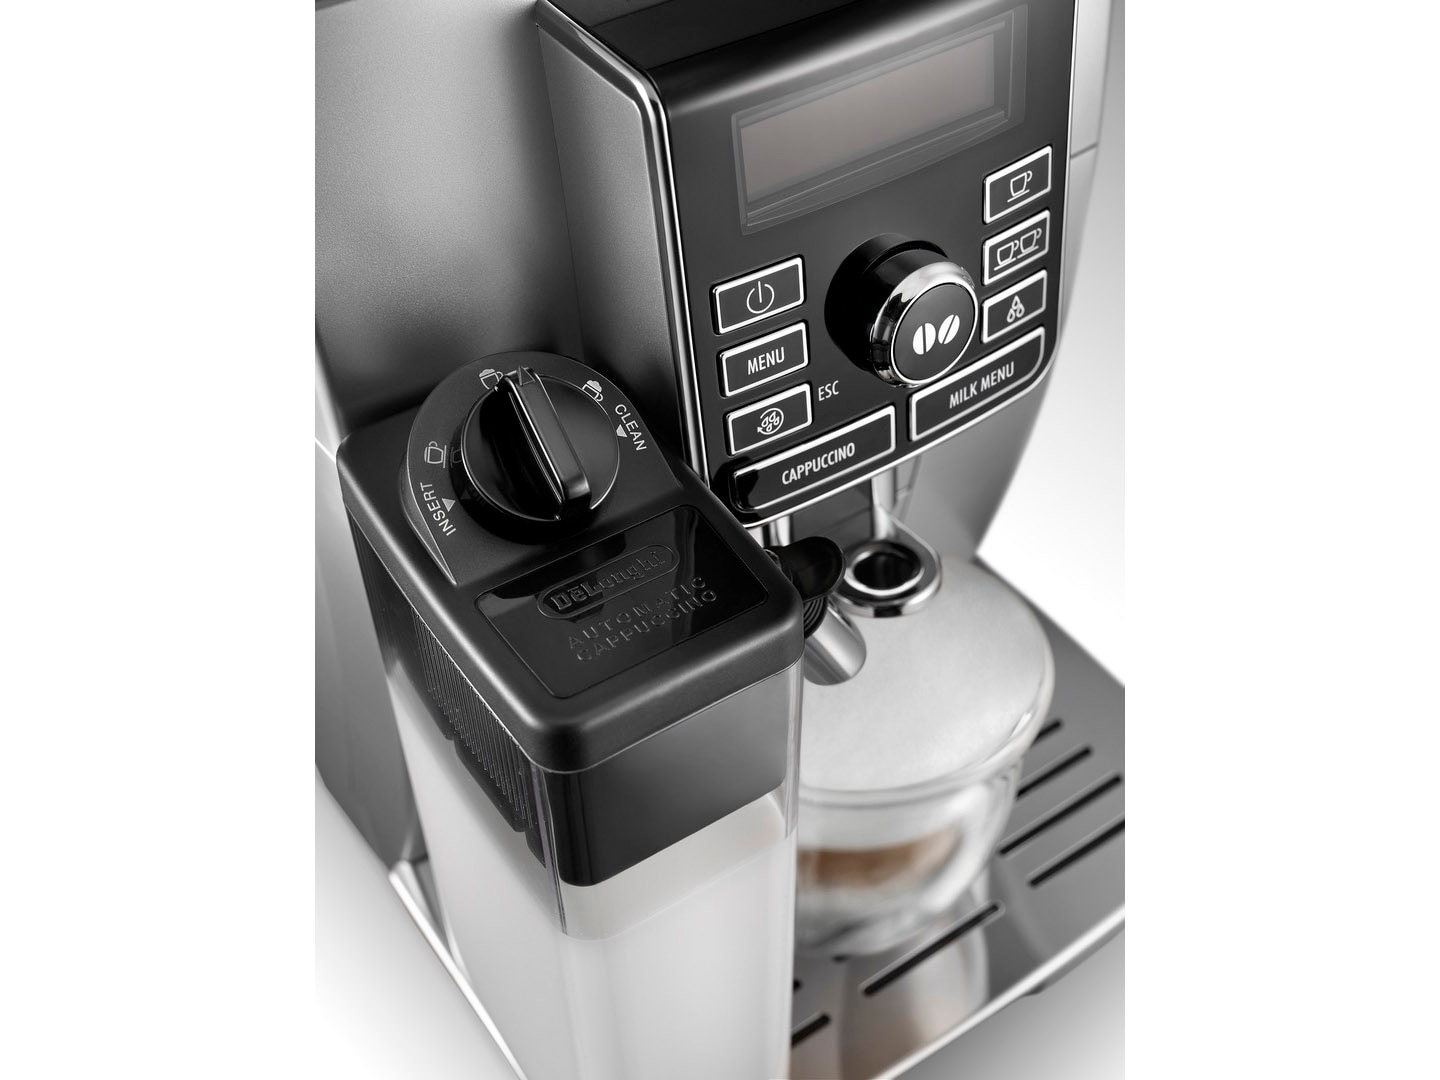 Digital S Automatic Espresso Machine, Cappuccino Maker -  - ECAM25462S